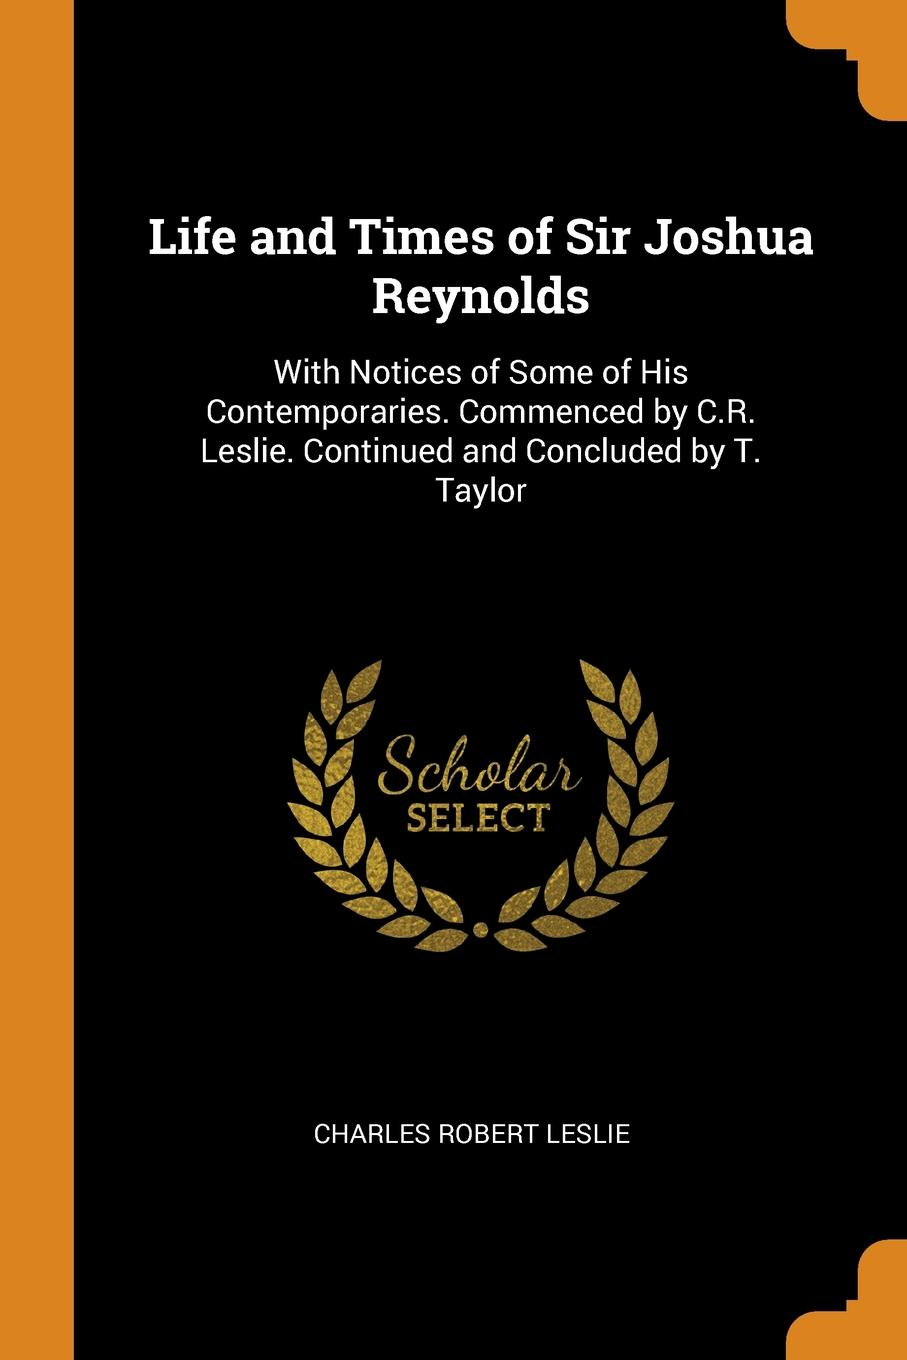 Charles Robert Leslie Life and Times of Sir Joshua Reynolds. With Notices of Some of His Contemporaries. Commenced by C.R. Leslie. Continued and Concluded by T. Taylor